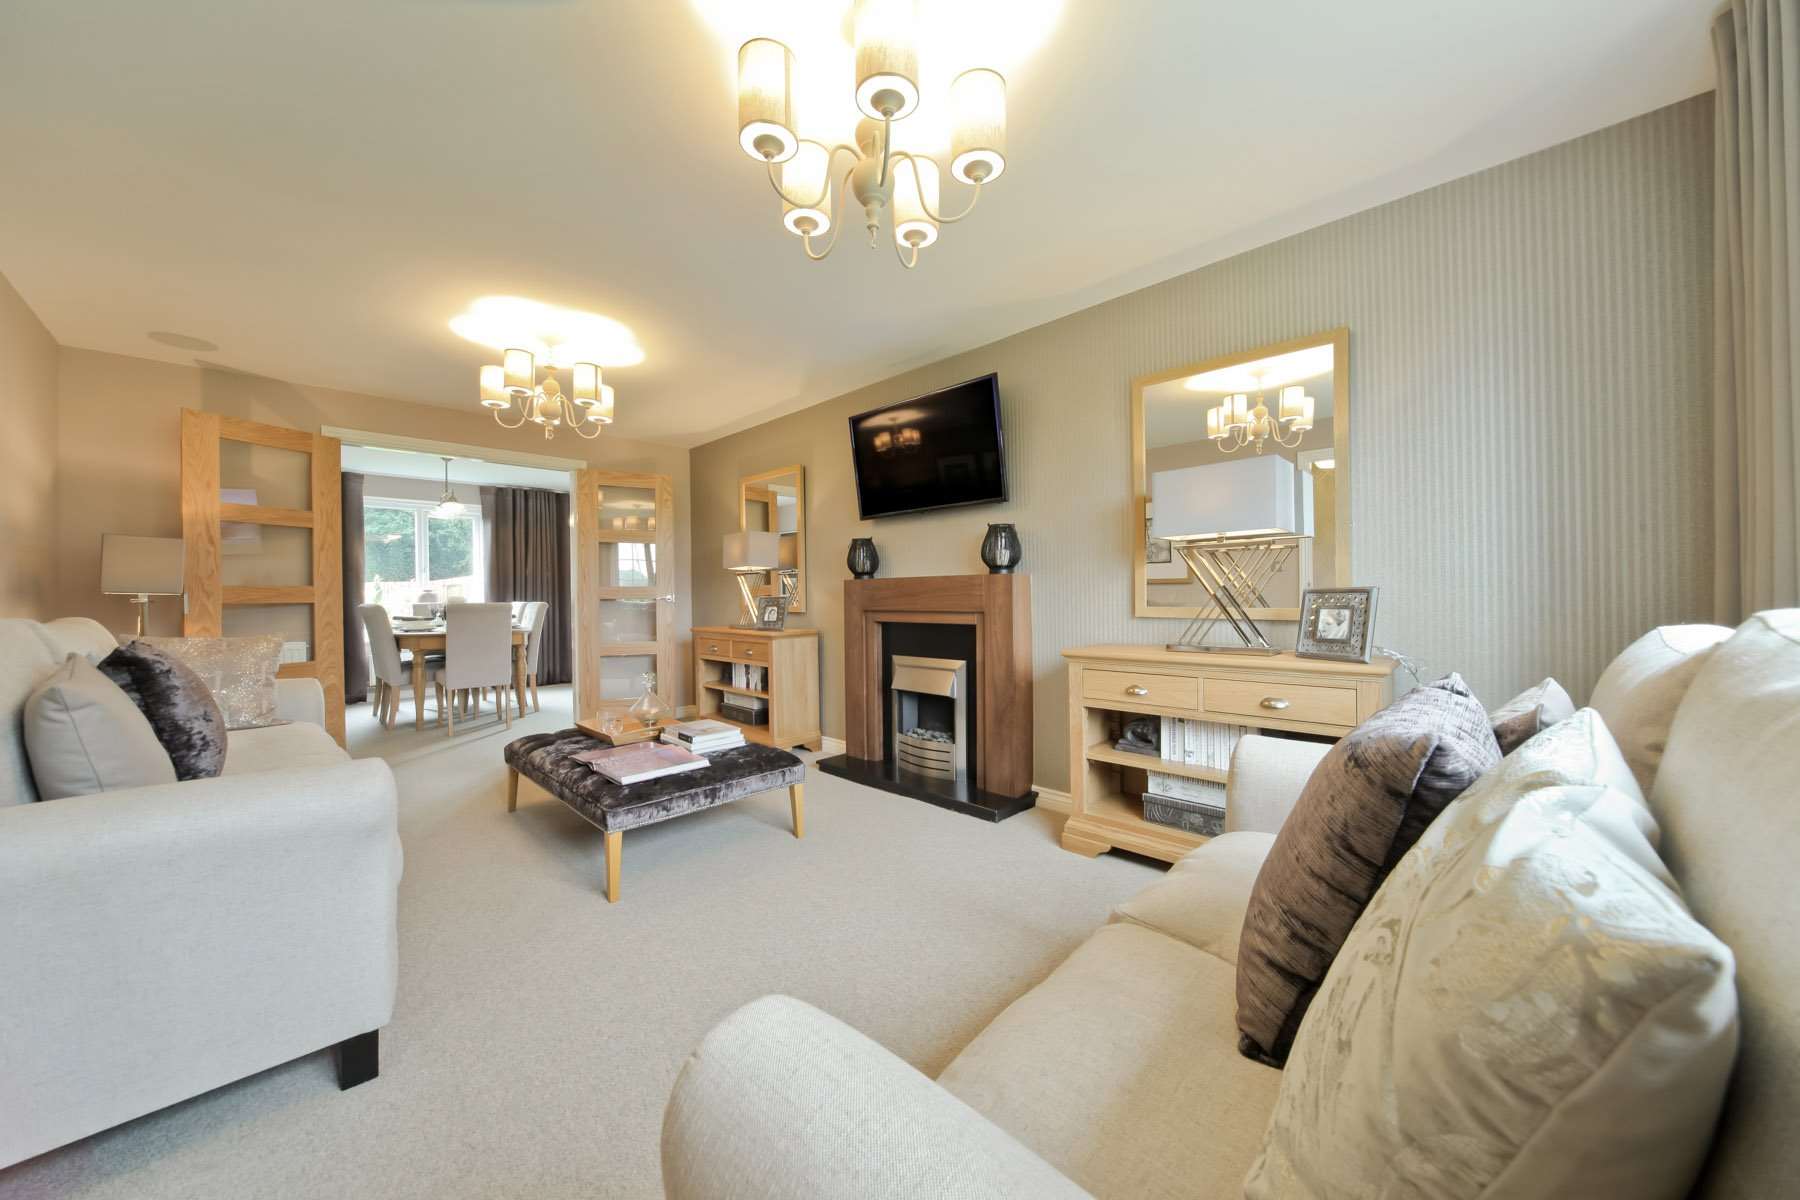 005_OM_Eynsham_Living_Room